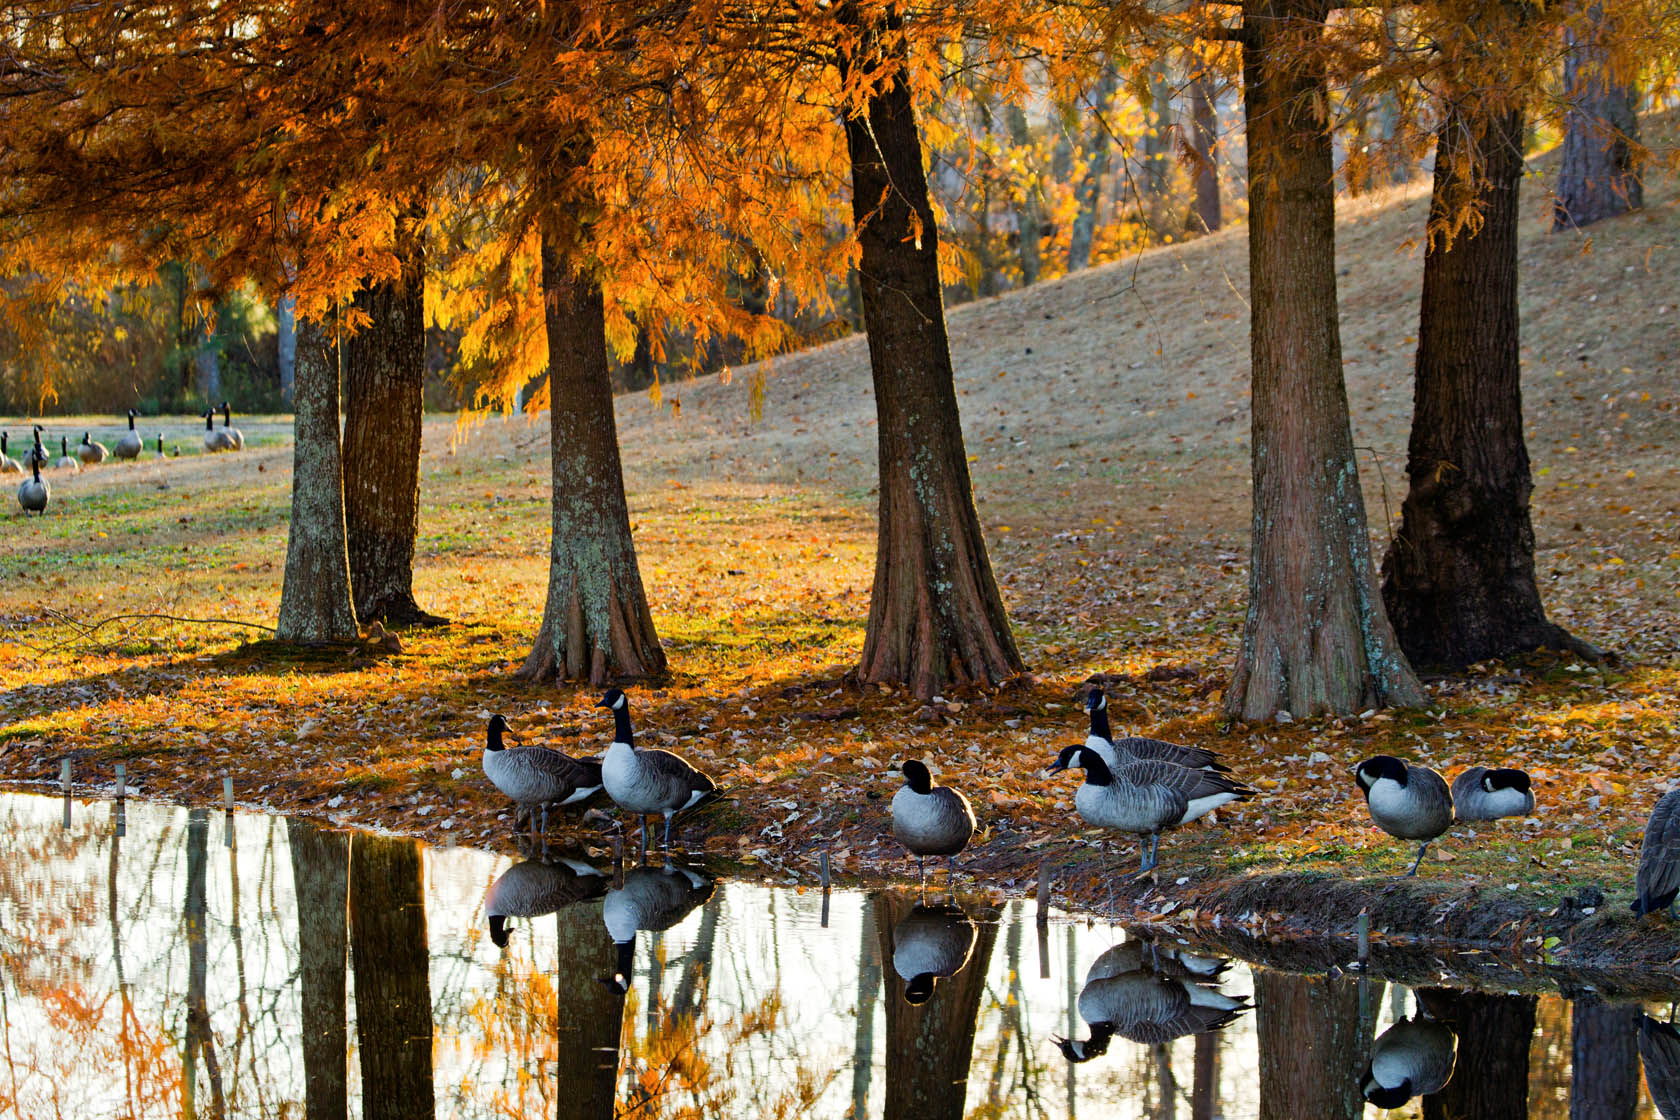 Canada-geese-reflecting-in-stream-autumn_MG_5598